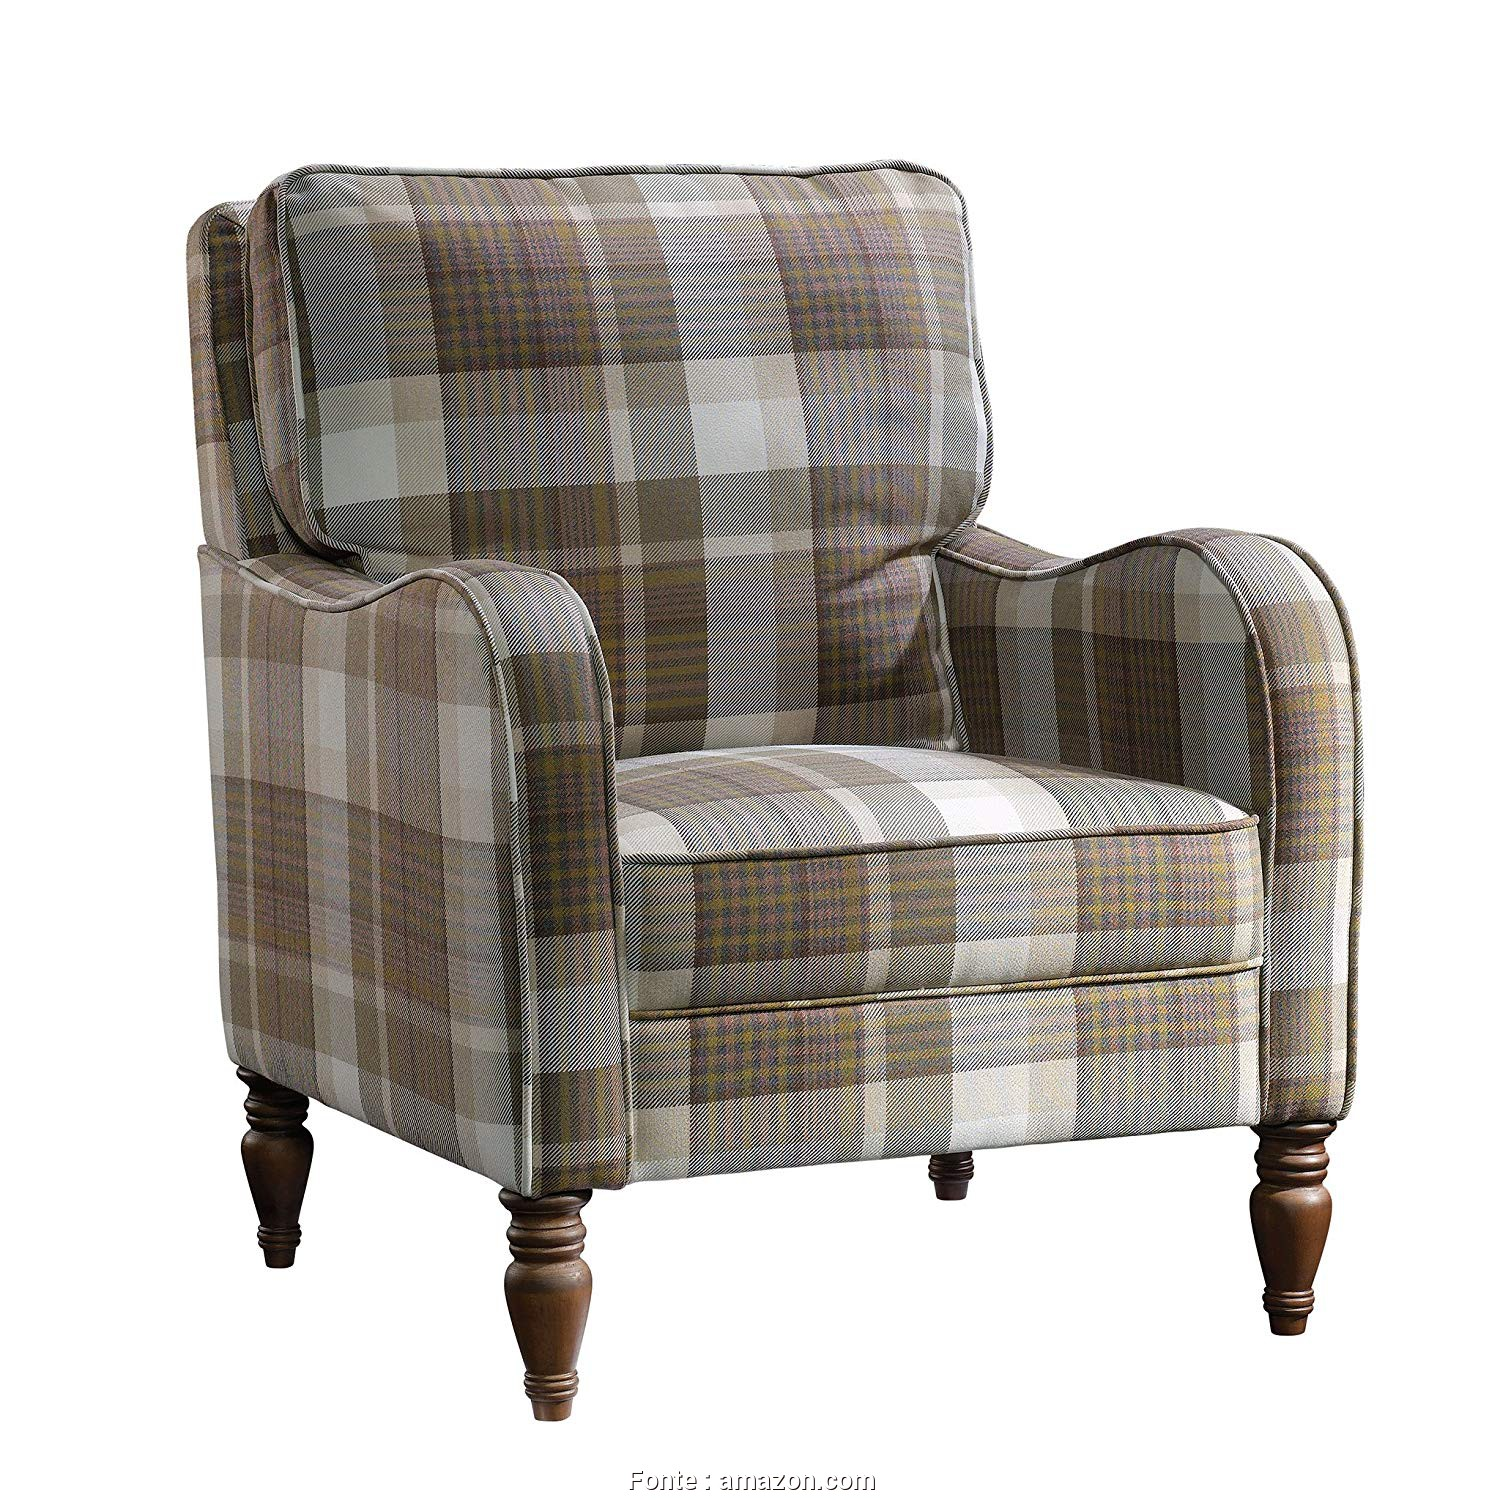 "Plaid Divano Amazon, Eccezionale Amazon.Com: Sauder 420076, Grange Accent Chair L: 29.13"" X W: 33.07"" X H: 33.86"" Plaid: Kitchen & Dining"